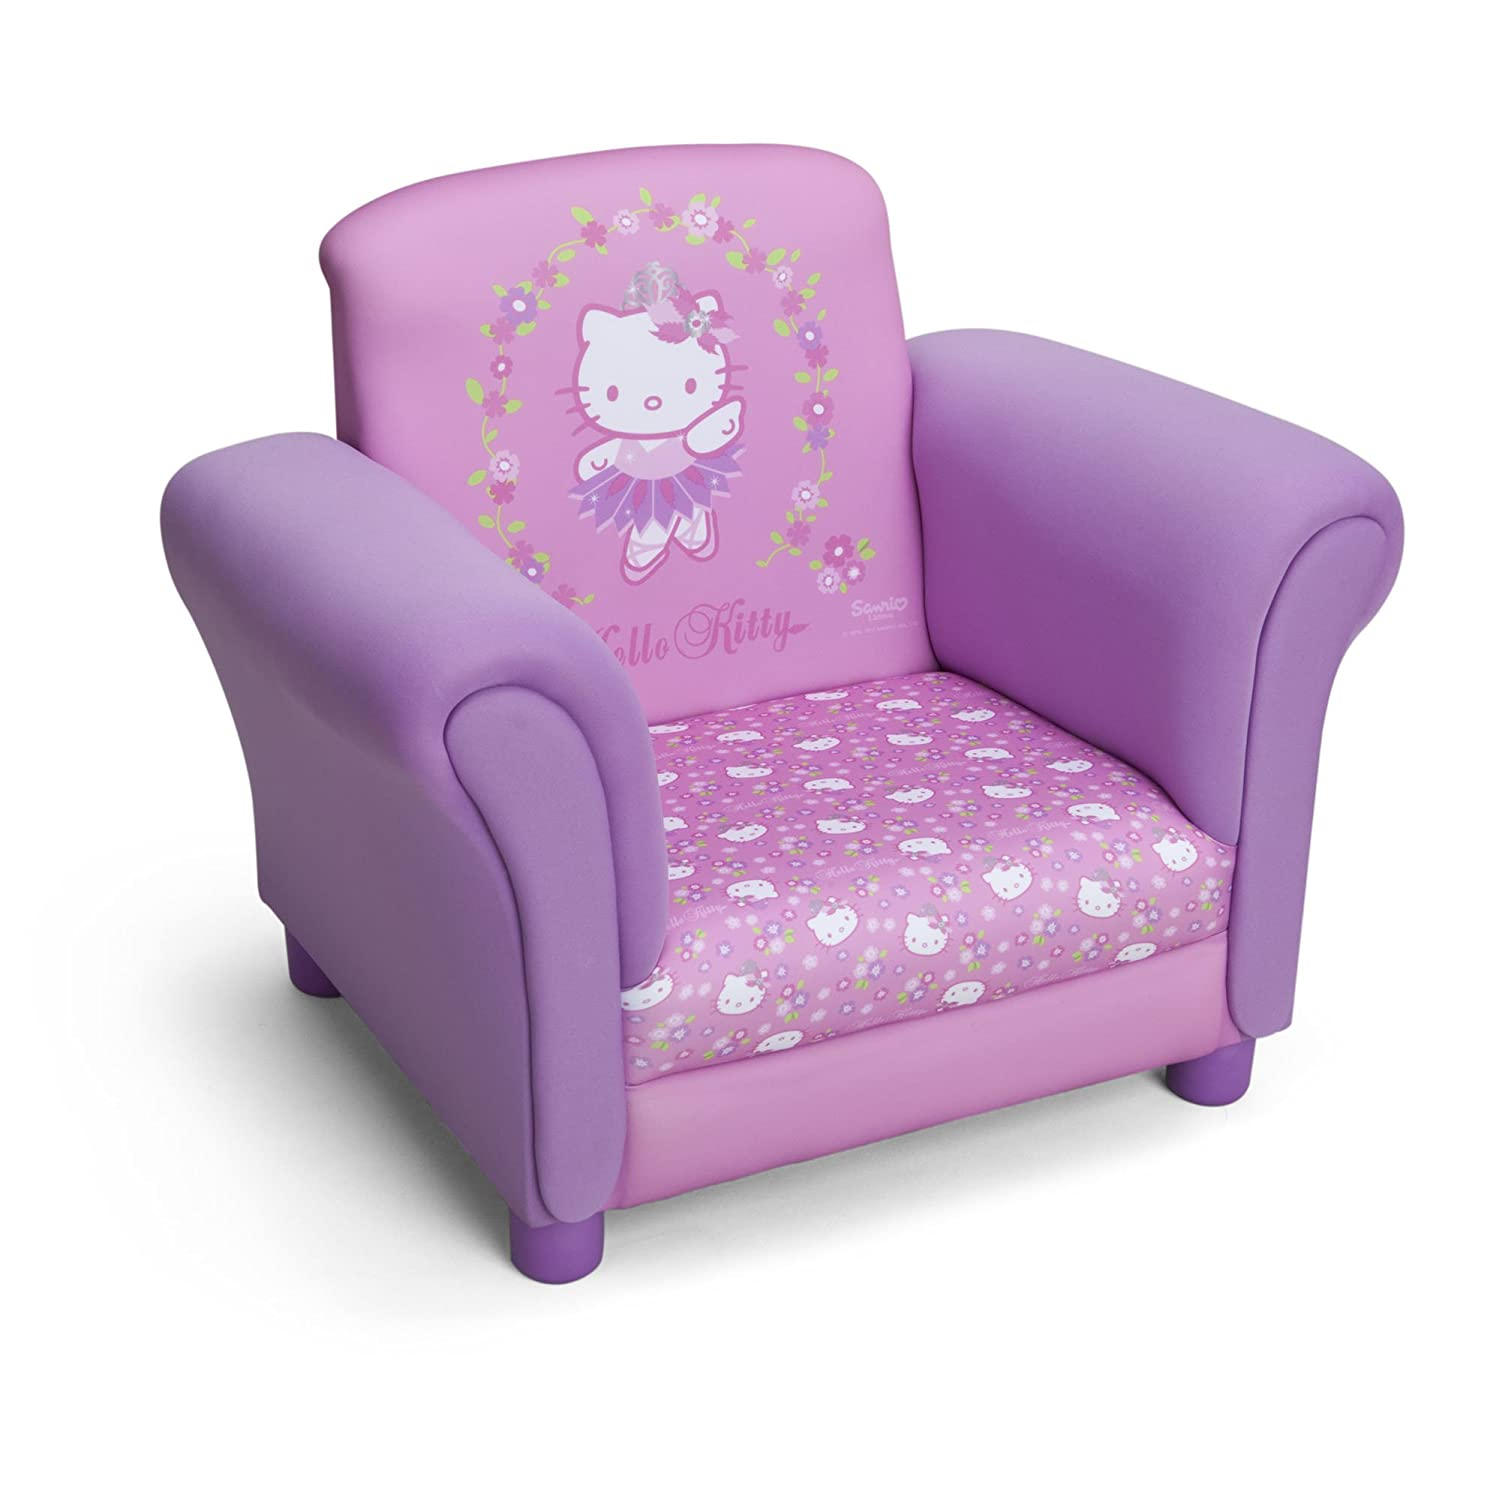 Comparatif Fauteuils Roulants Fauteuil Hello Kitty